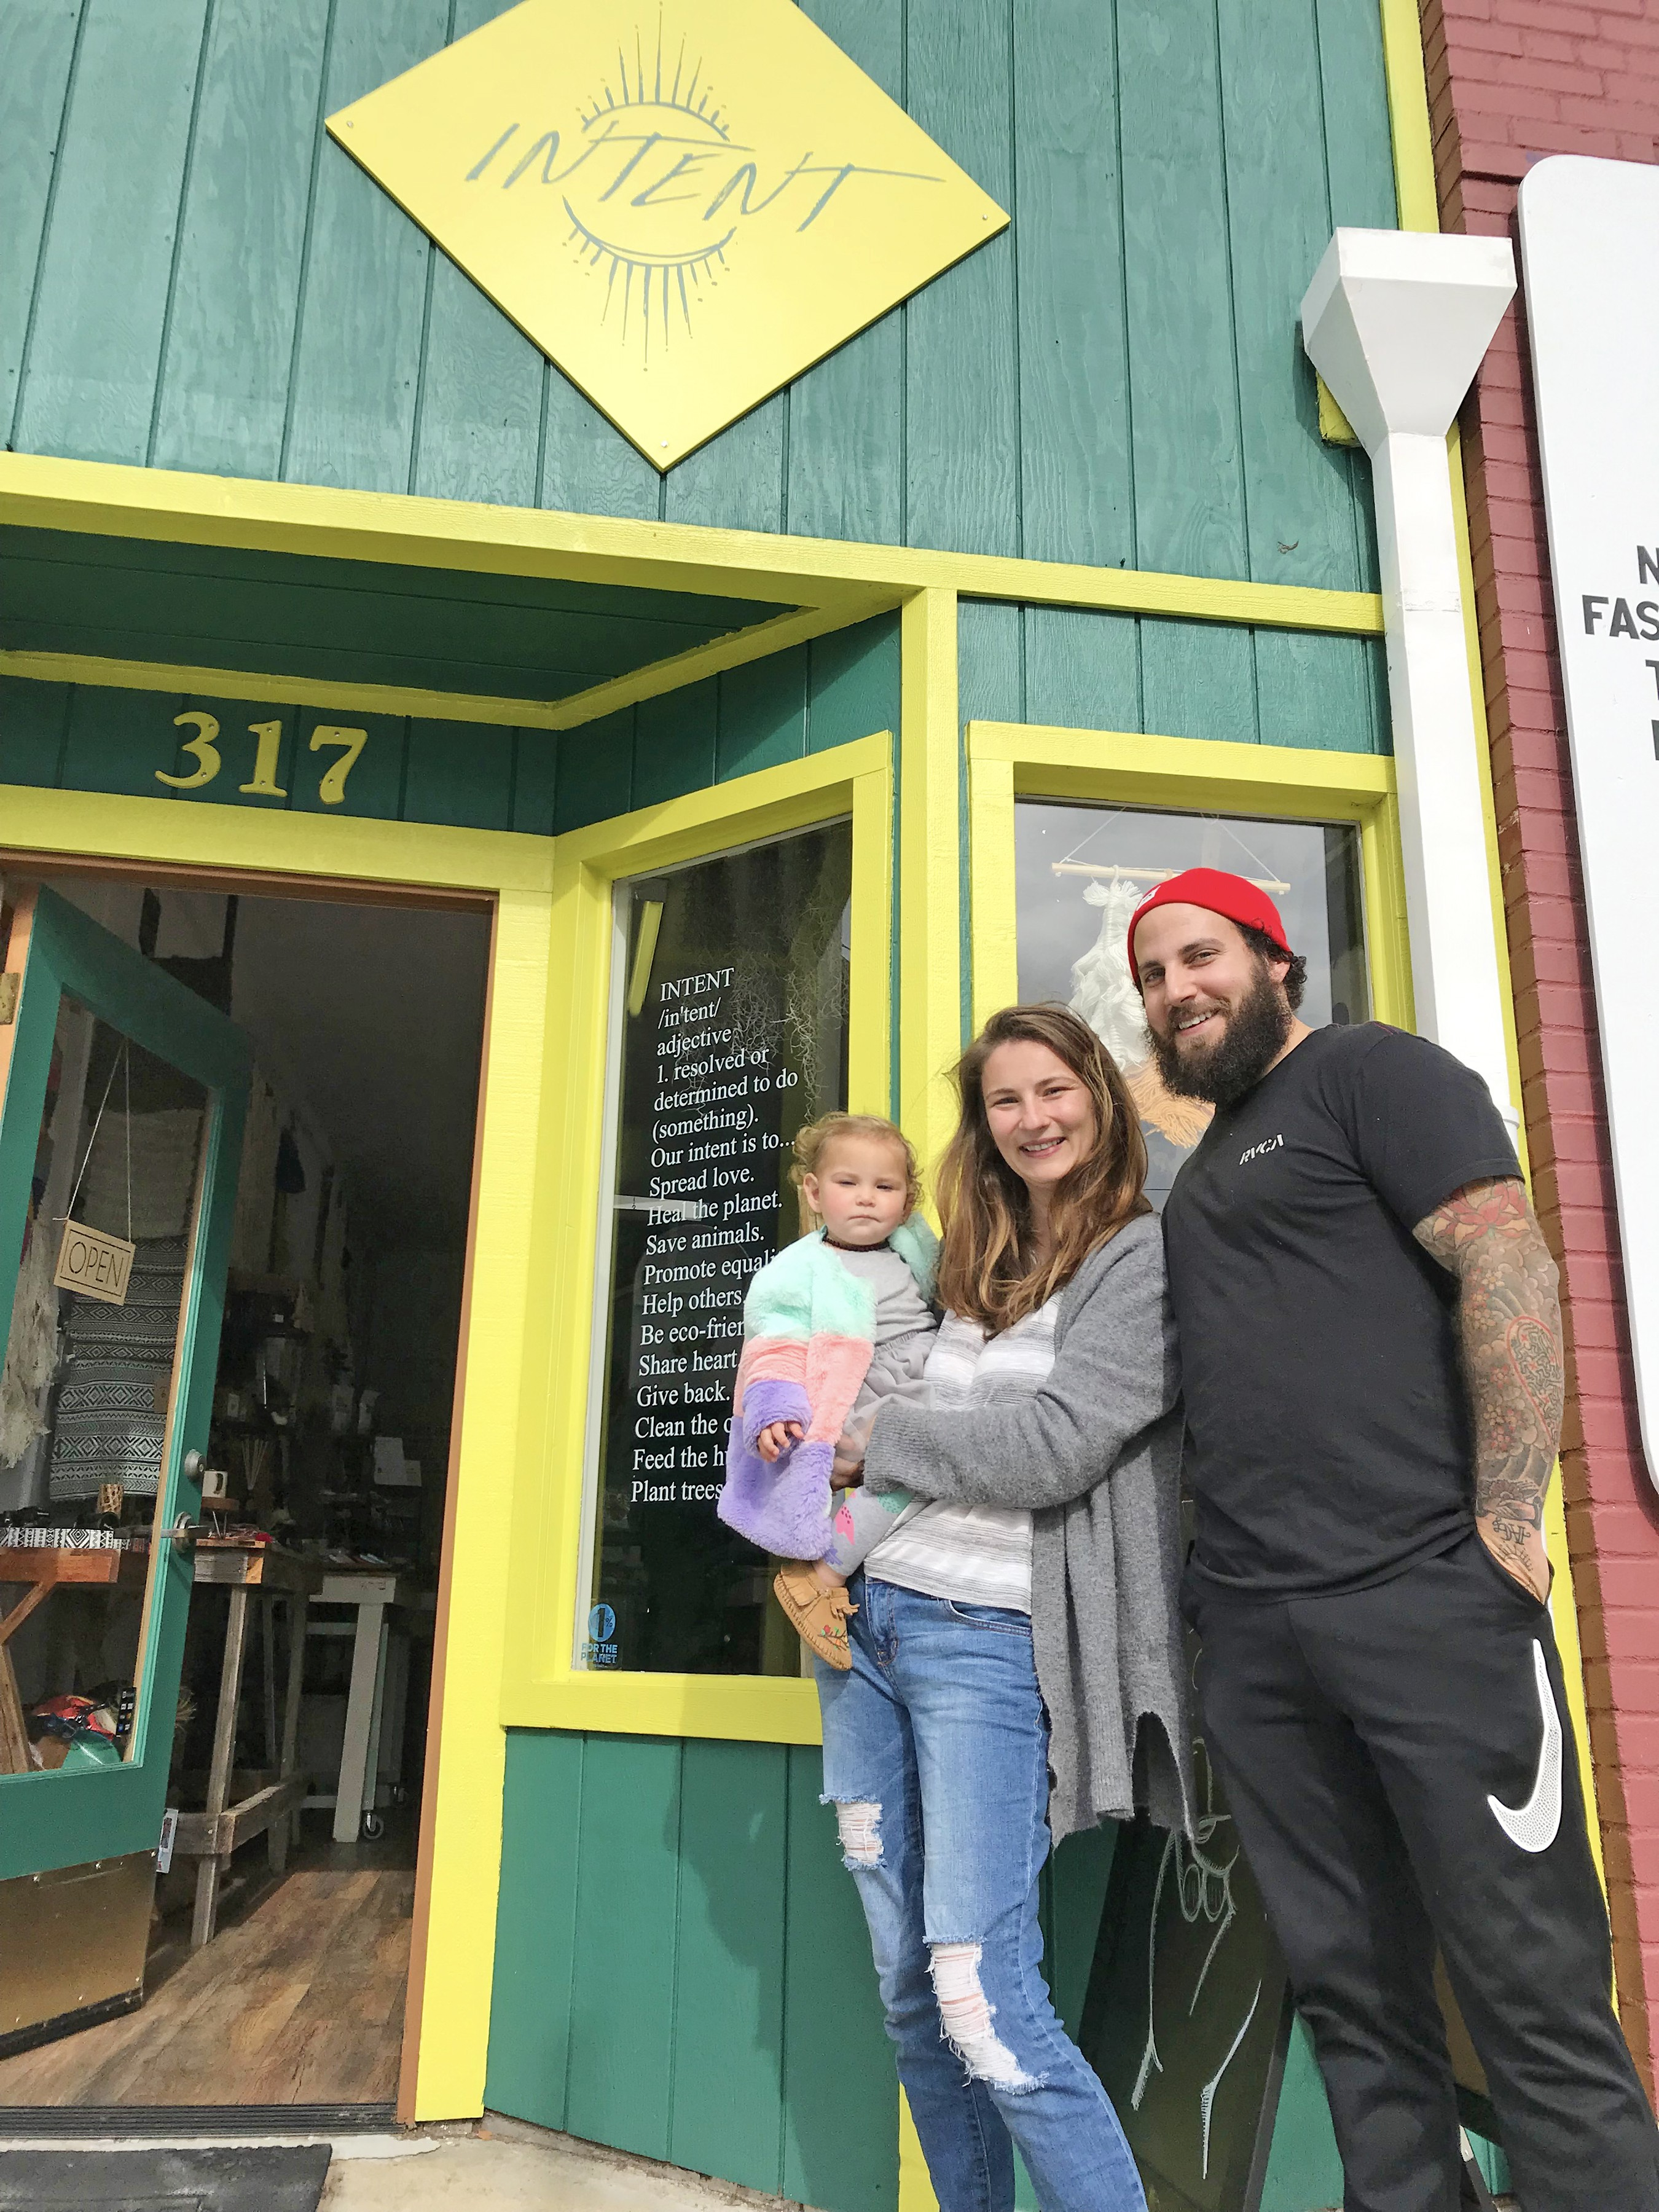 Eclectic Morro Bay boutique Intent is committed to more than